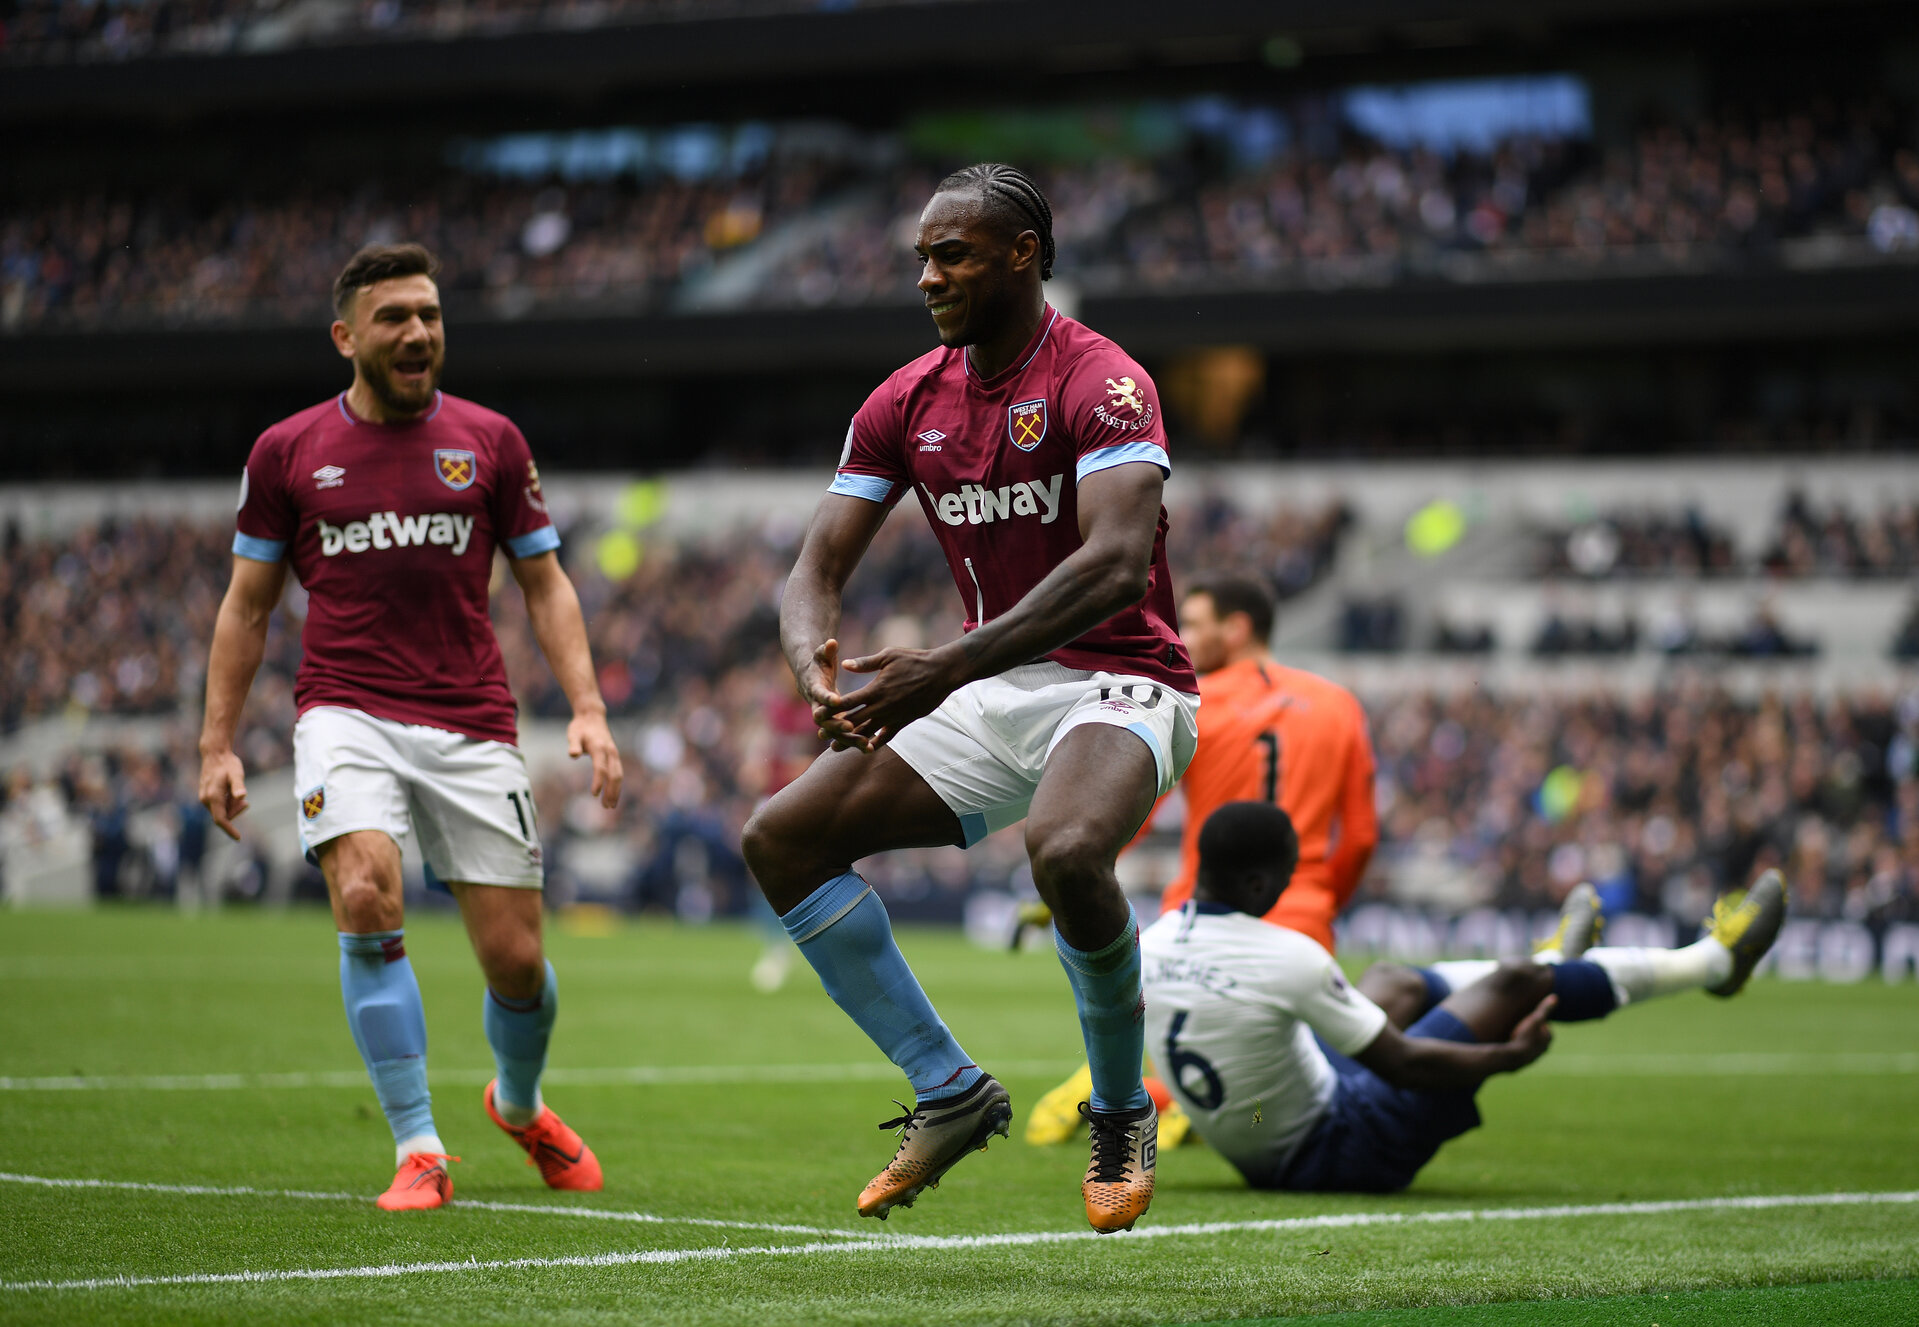 LONDON, ENGLAND - APRIL 27:  Michail Antonio of West Ham United celebrates after scoring his team's first goal during the Premier League match between Tottenham Hotspur and West Ham United at Tottenham Hotspur Stadium on April 27, 2019 in London, United Kingdom. (Photo by Shaun Botterill/Getty Images)